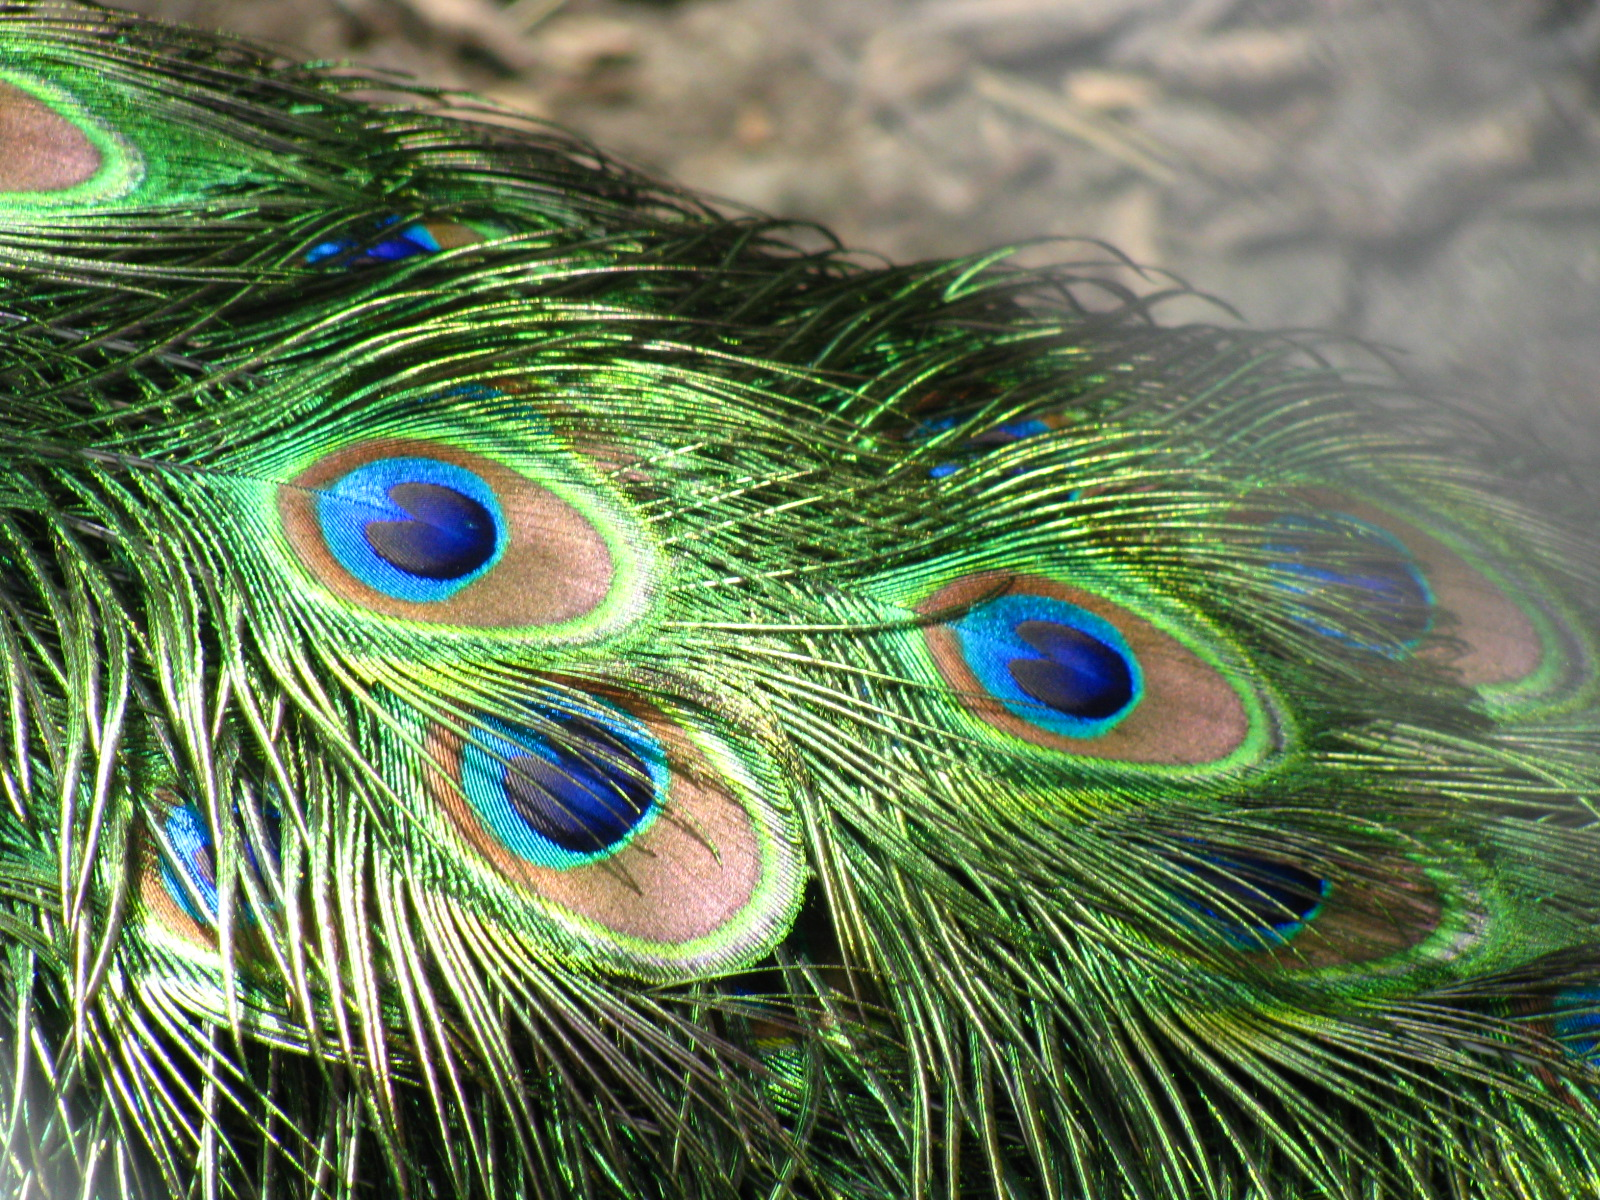 The brilliant iridescent colours of the peacock's tail feathers are created by structural coloration, as first noted by Isaac Newton and Robert Hooke.